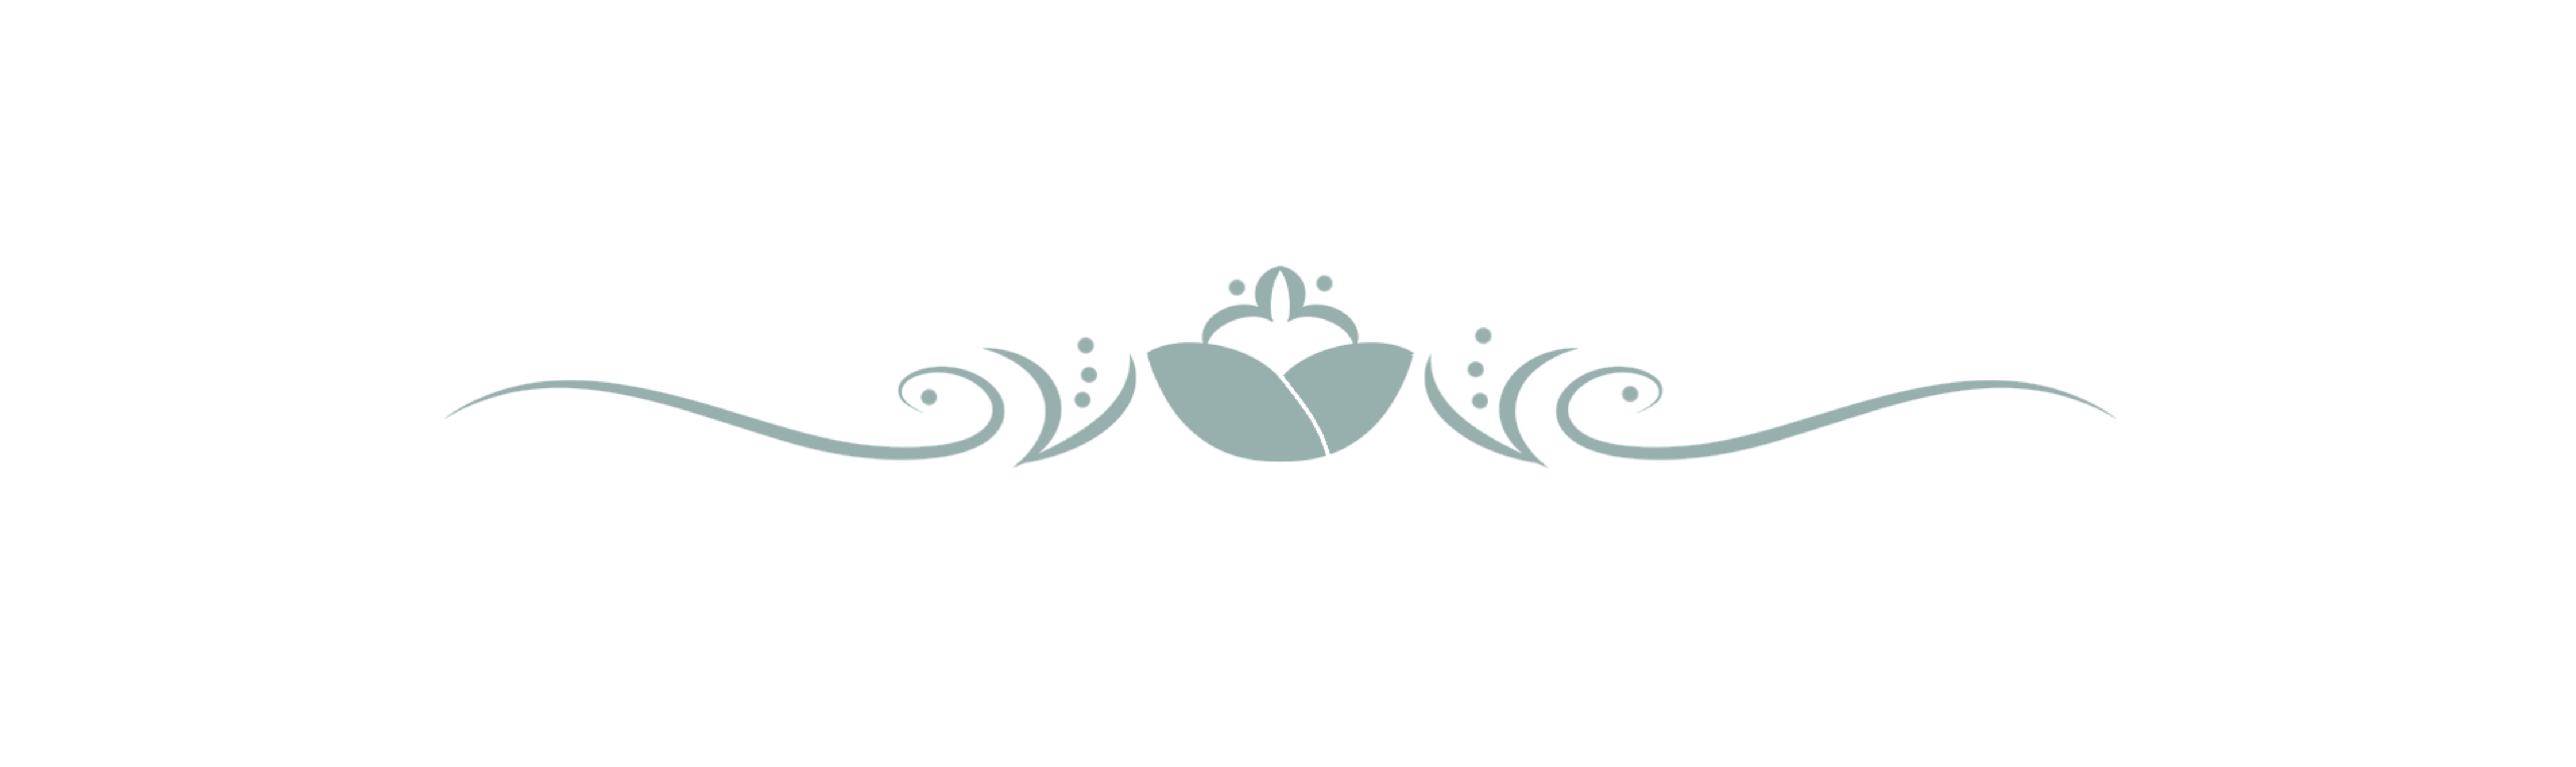 Curl clipart wedding Photographers only wedding month Wedding